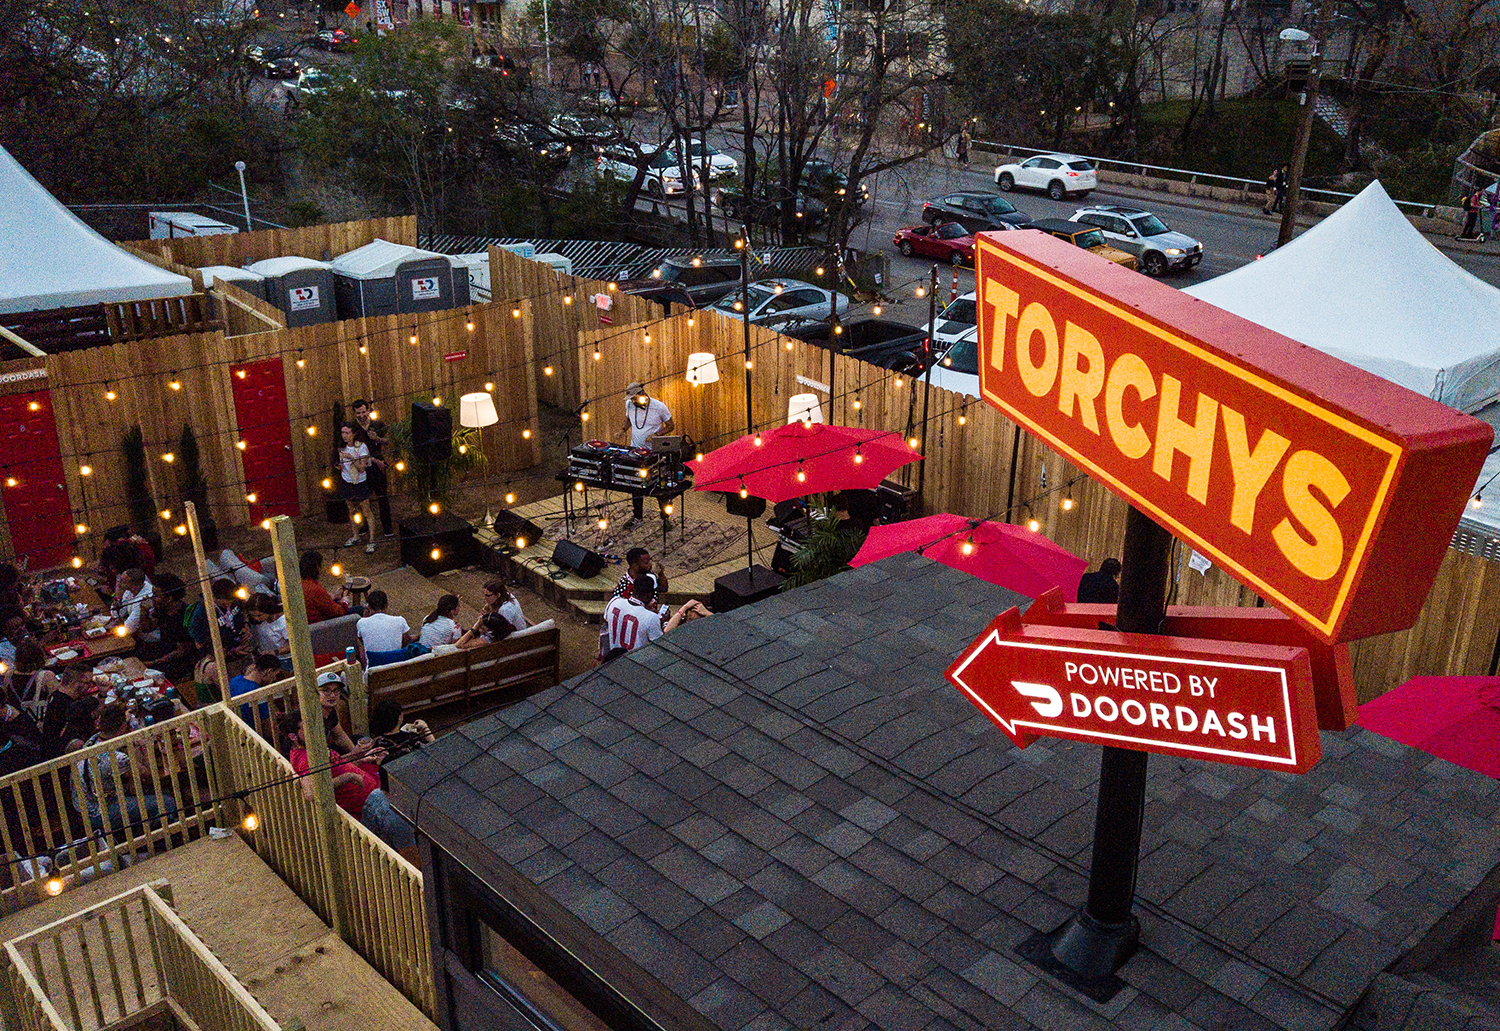 Torchy's Tacos, Music and a Tiny House: Inside DoorDash's First SXSW Event